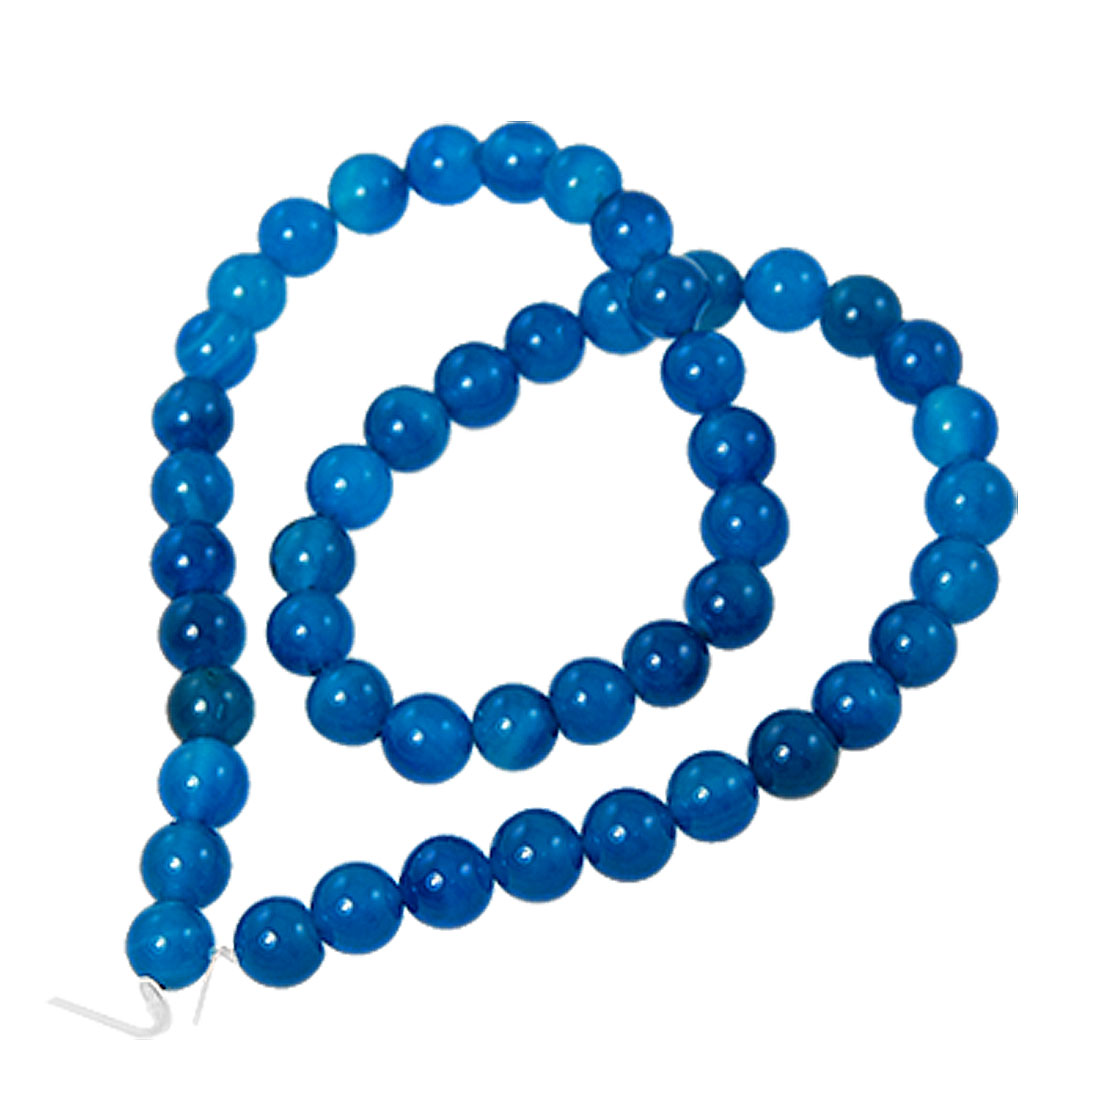 8mm Diameter 49 Round Blue Faux Jade Jewelry Pendant Beads